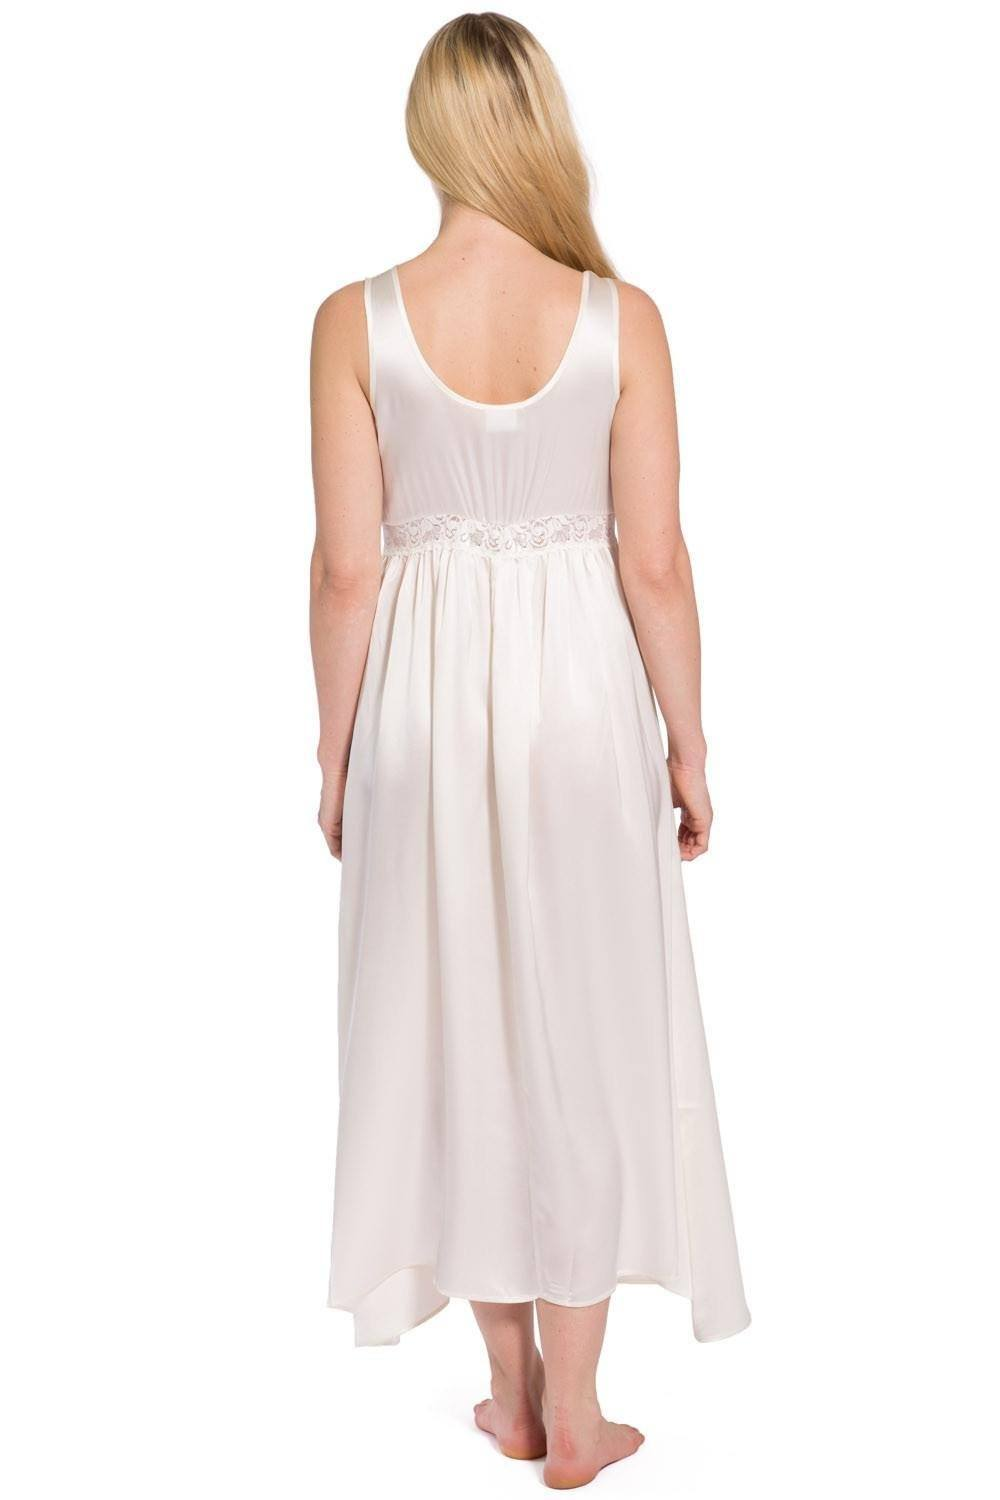 Womens>Sleep And Lounge>Nightgown - Romantique Pure Silk Nightgown With Stunning Lace Bodice- 100% Mulberry Silk Skirt With Stretch Lace